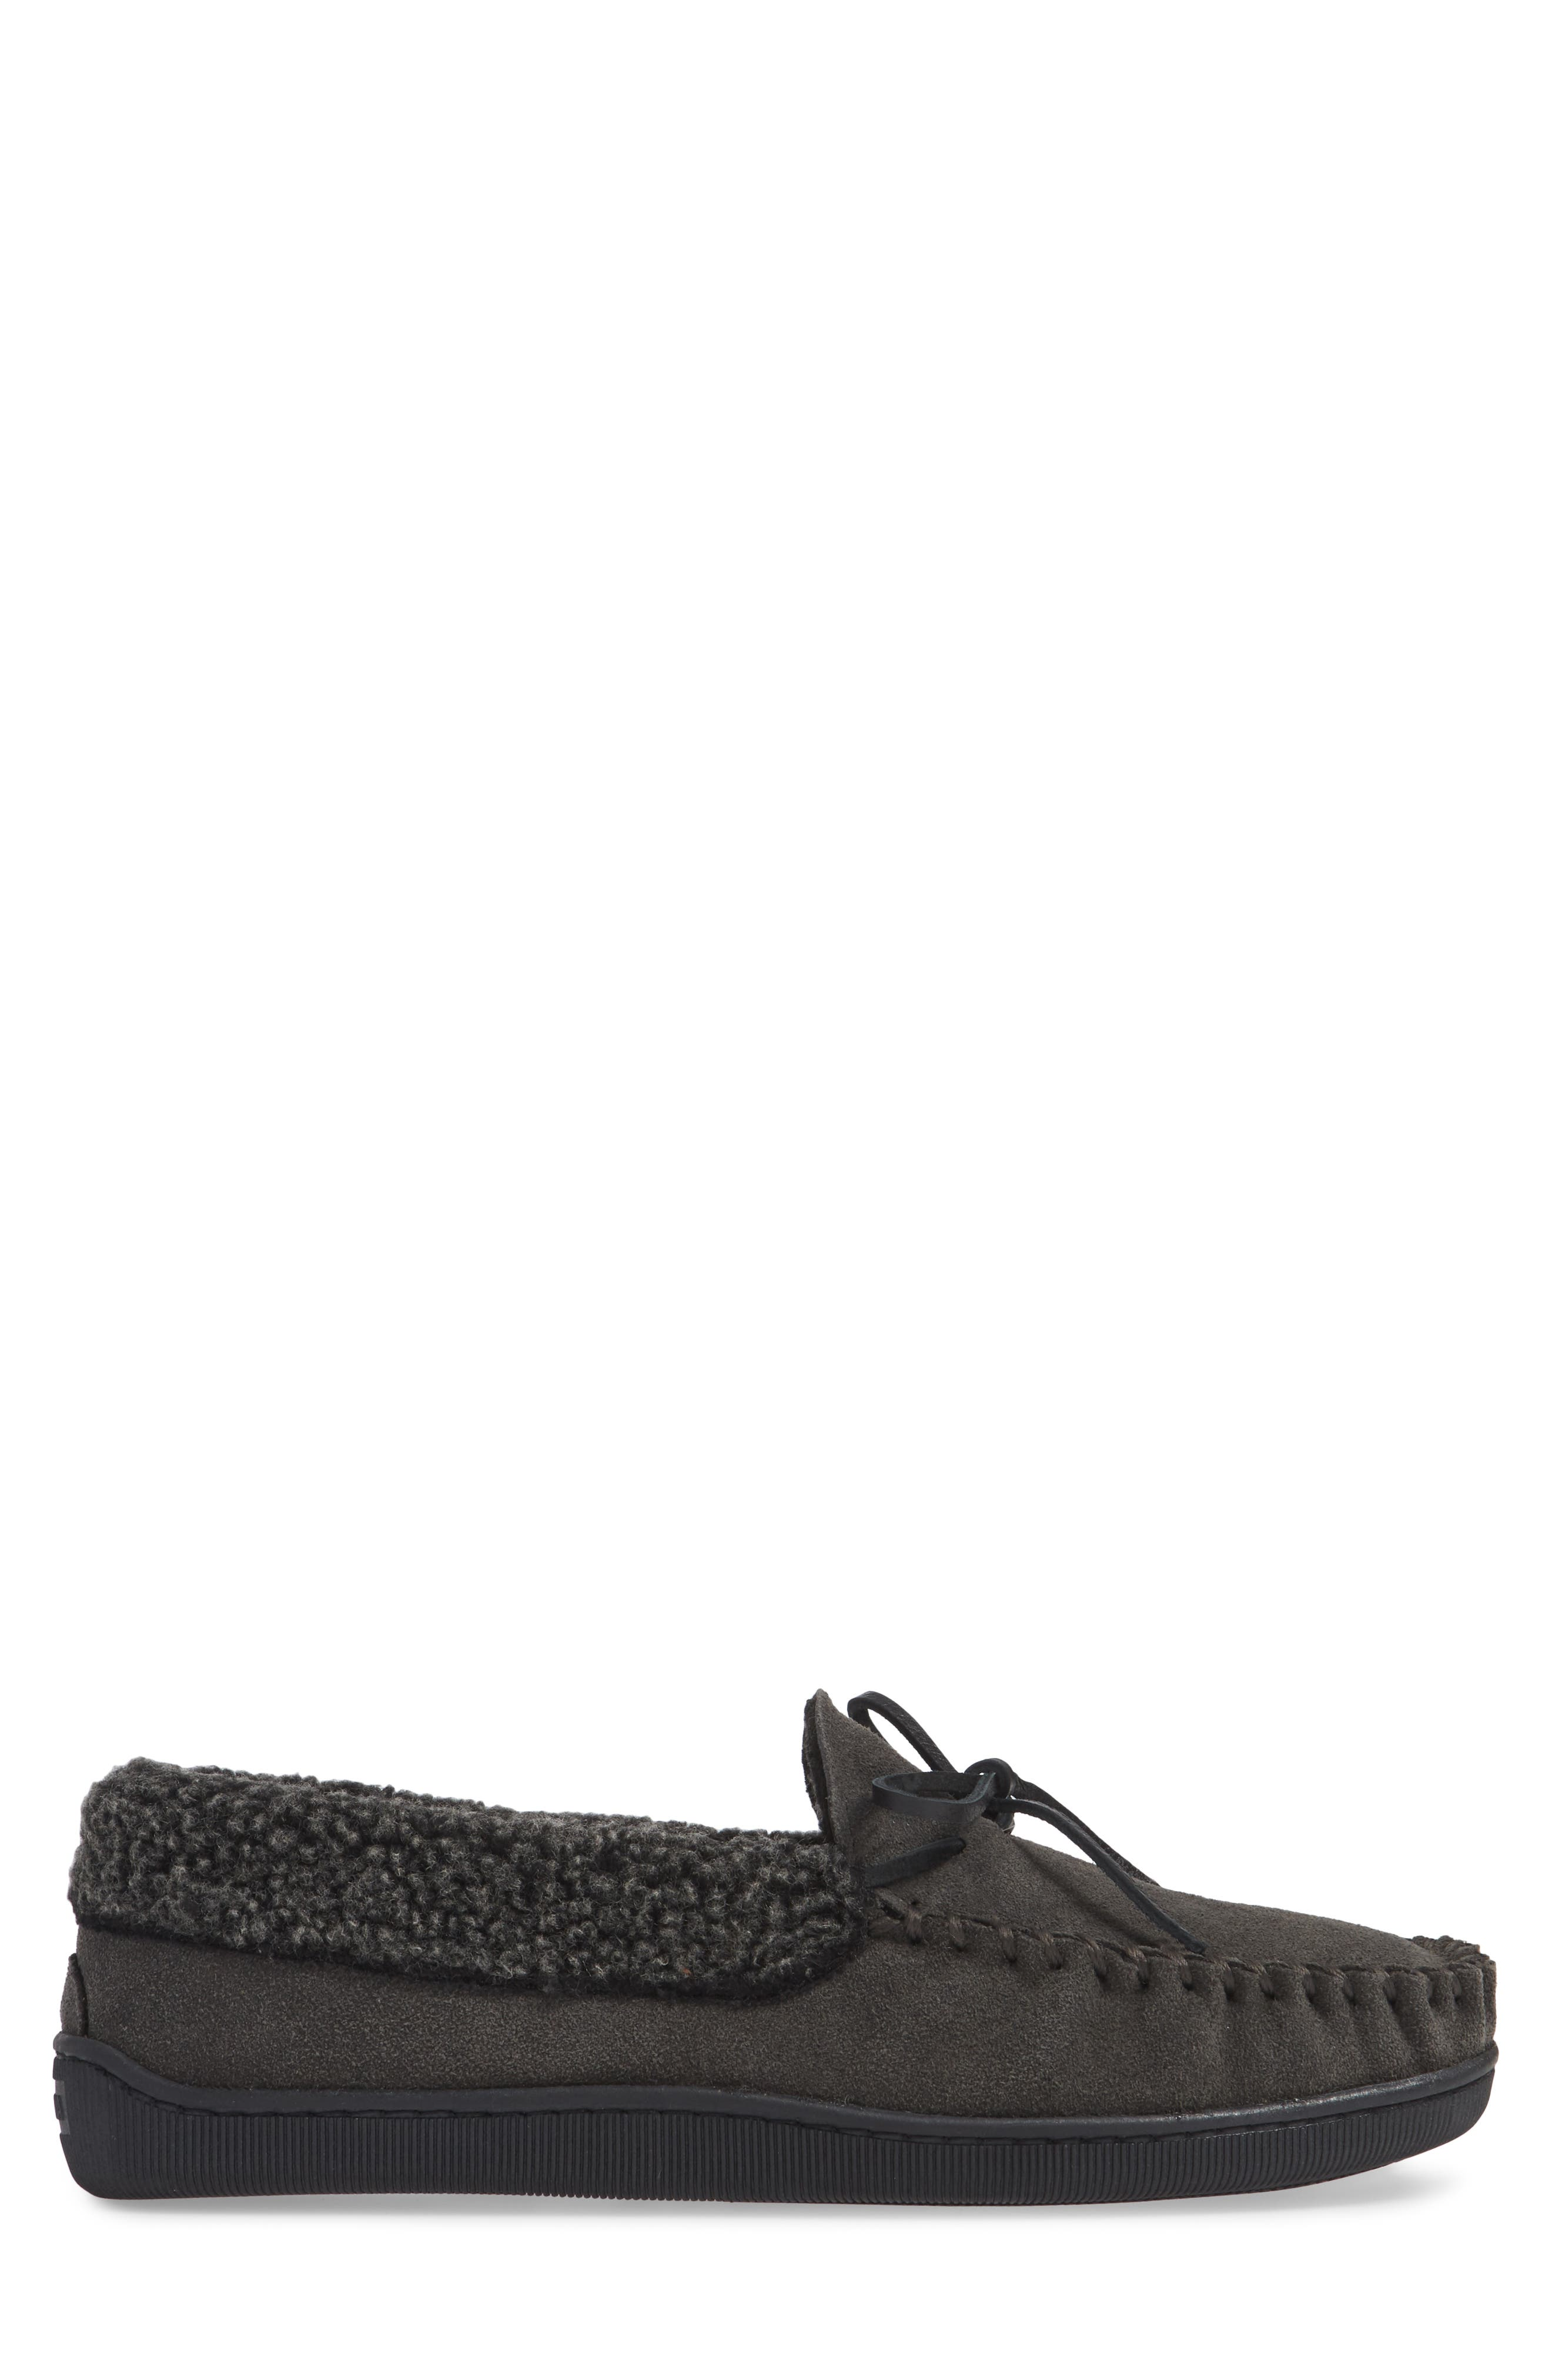 Allen Moccasin Slipper,                             Alternate thumbnail 3, color,                             CHARCOAL SUEDE